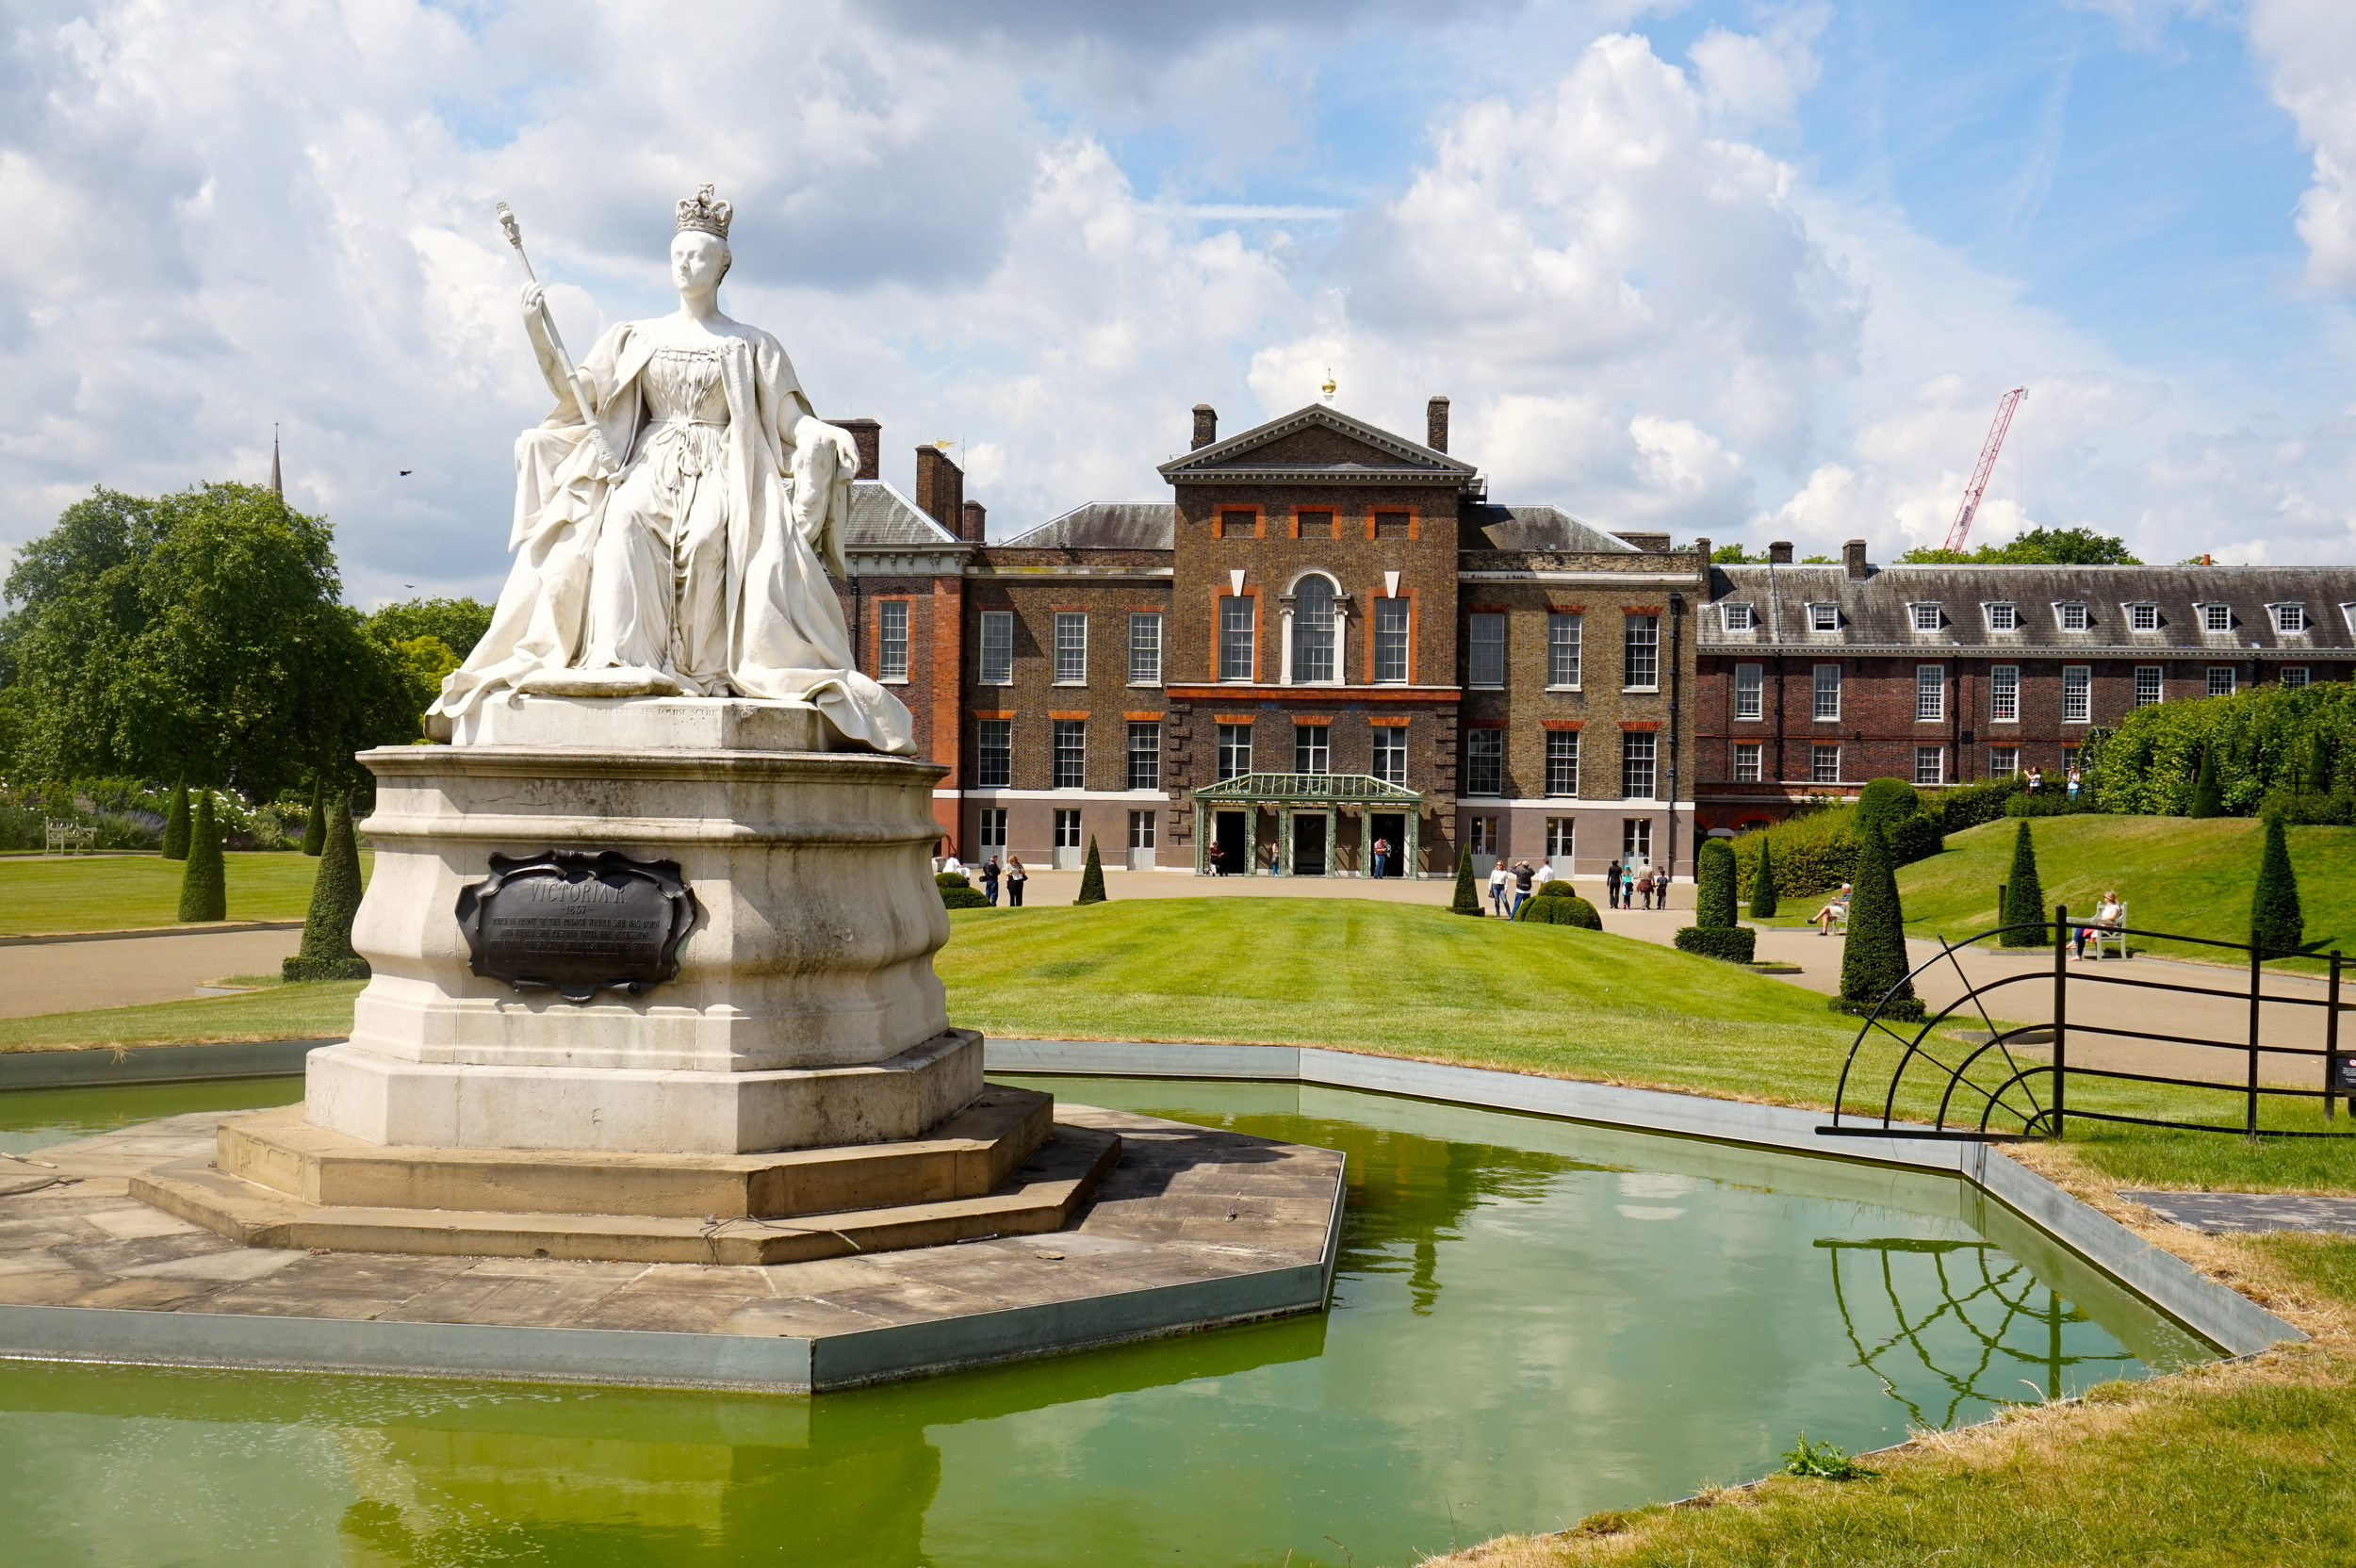 Queen Victoria in front of Kensington Palace